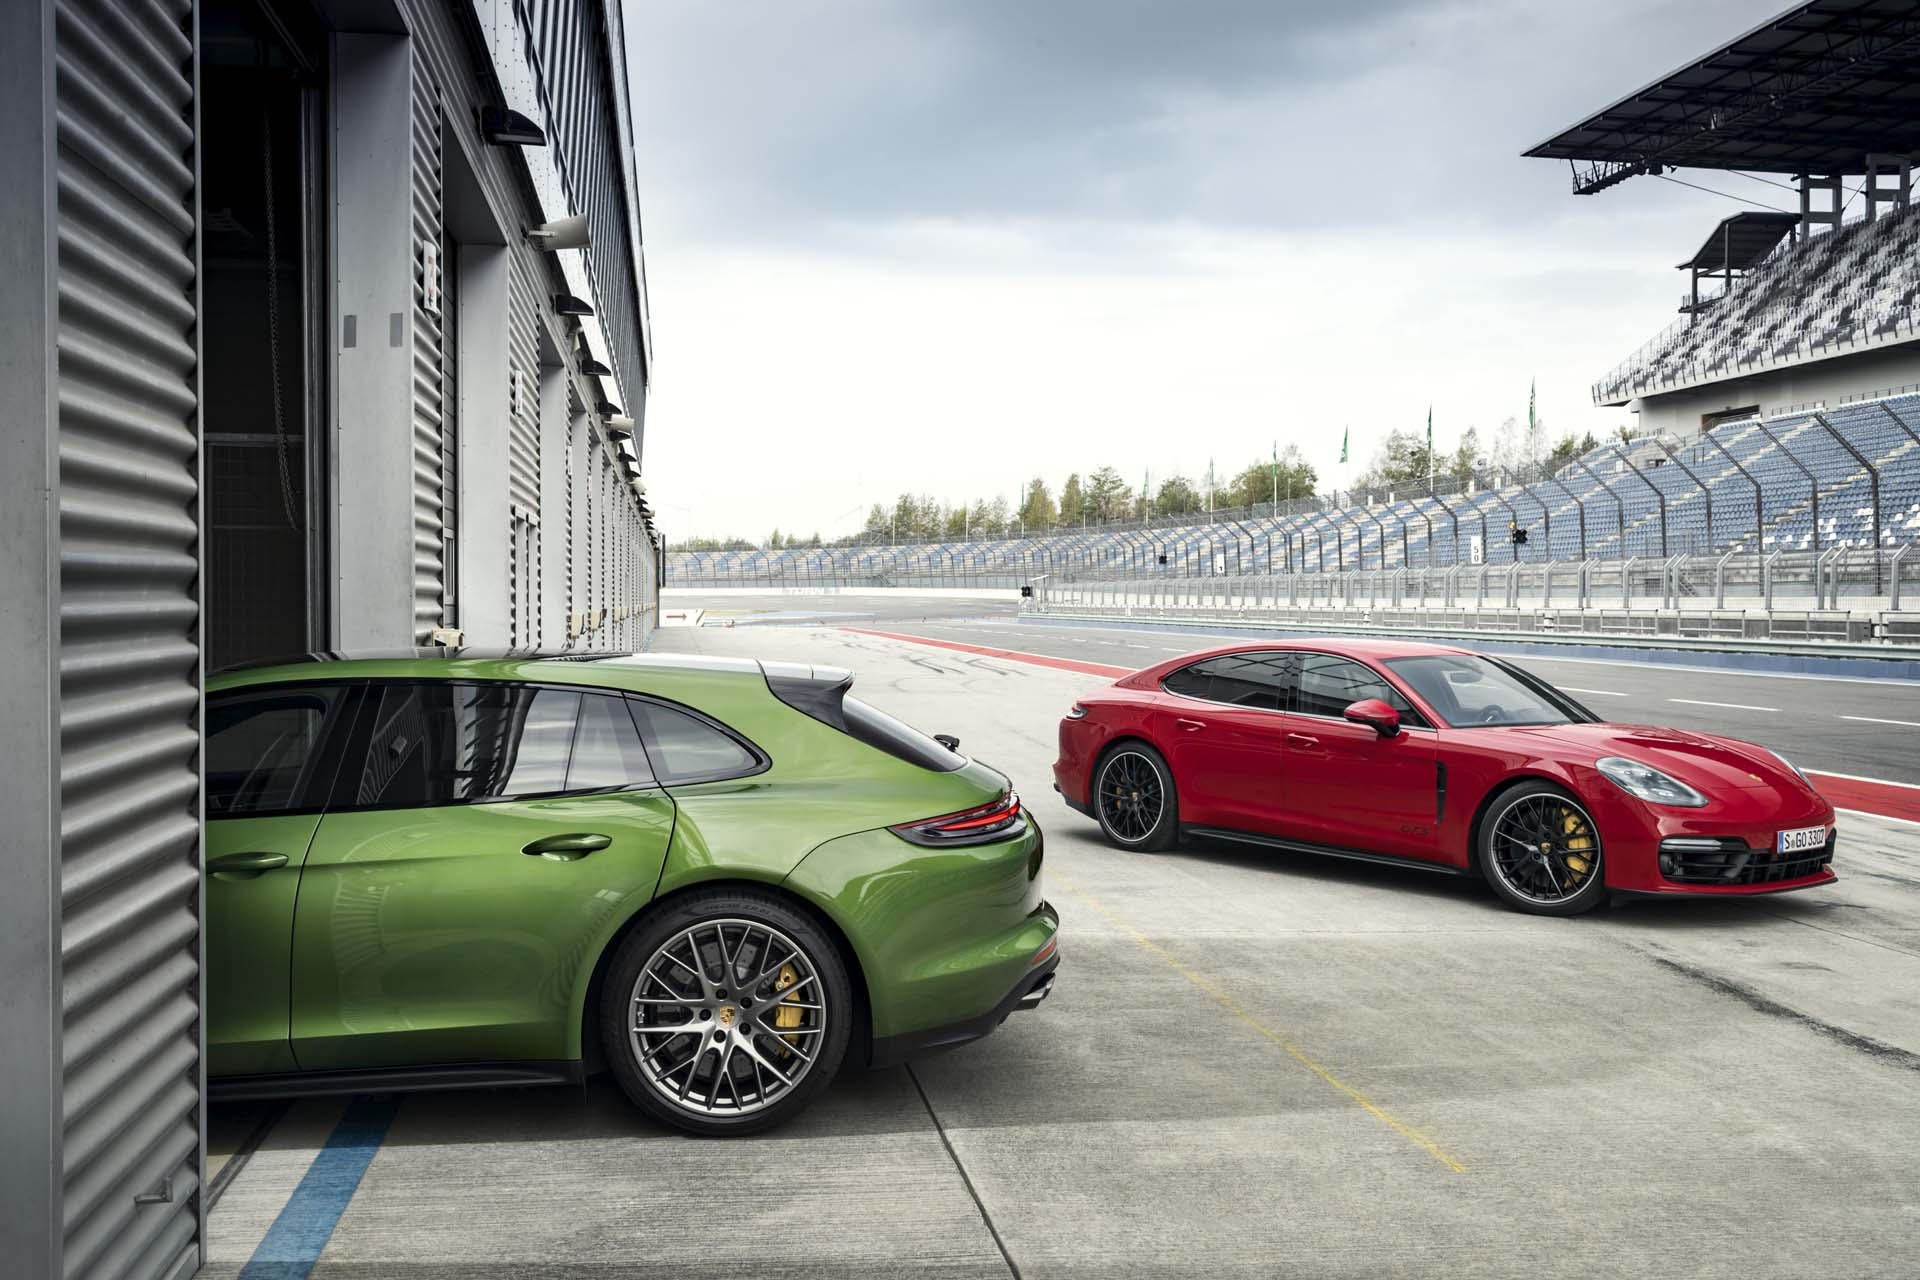 2019 Porsche Panamera GTS and Panamera GTS Sport Turismo Wallpapers (11)